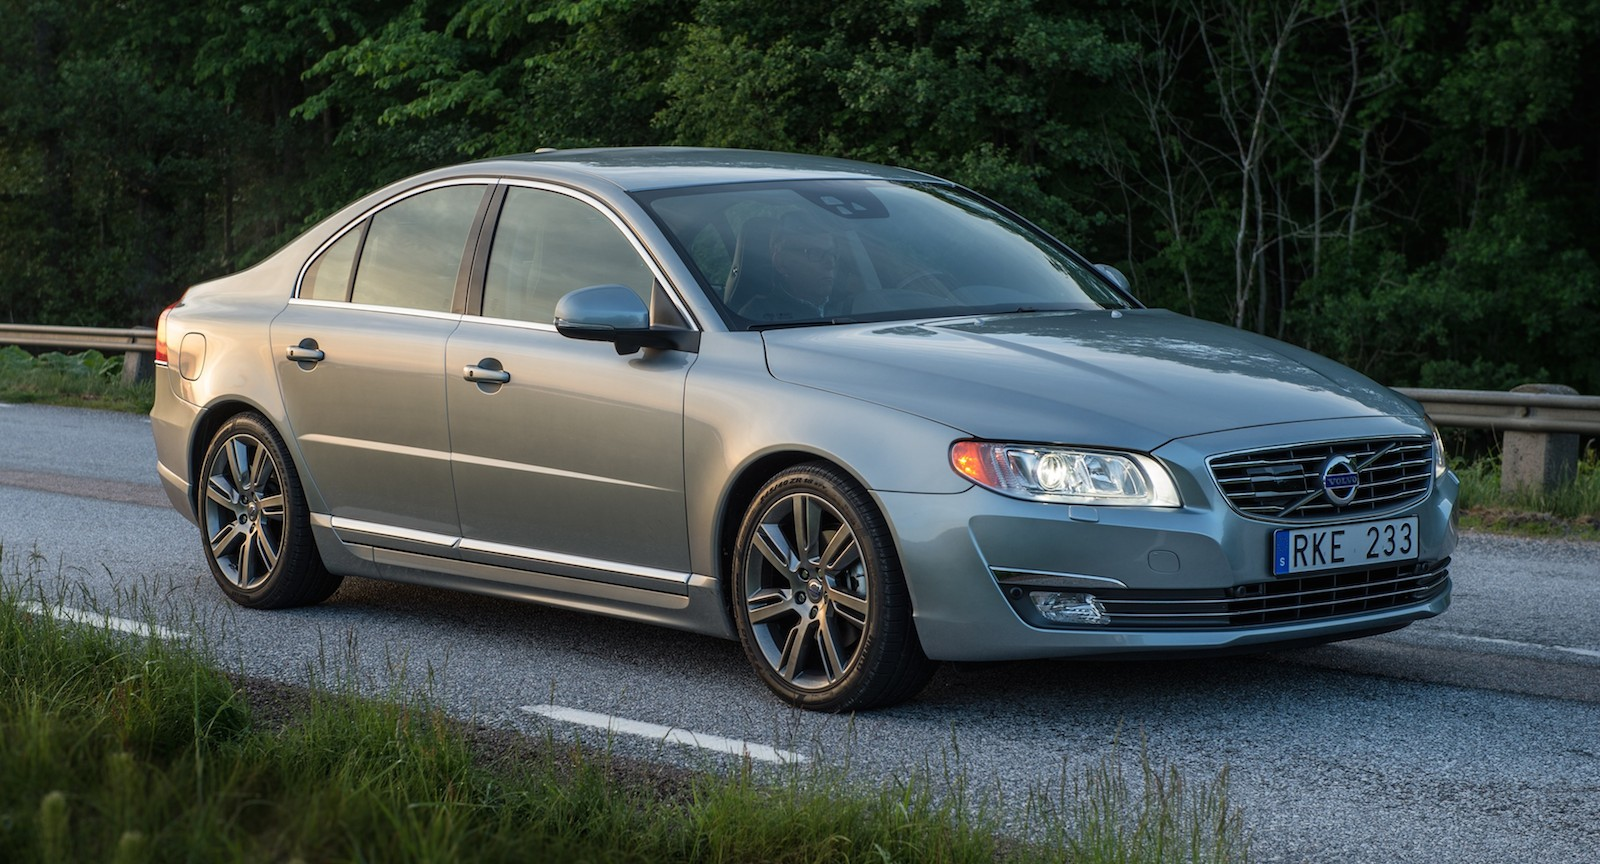 Volvo S80 Replacing S90 Next Up After New Xc90 Report